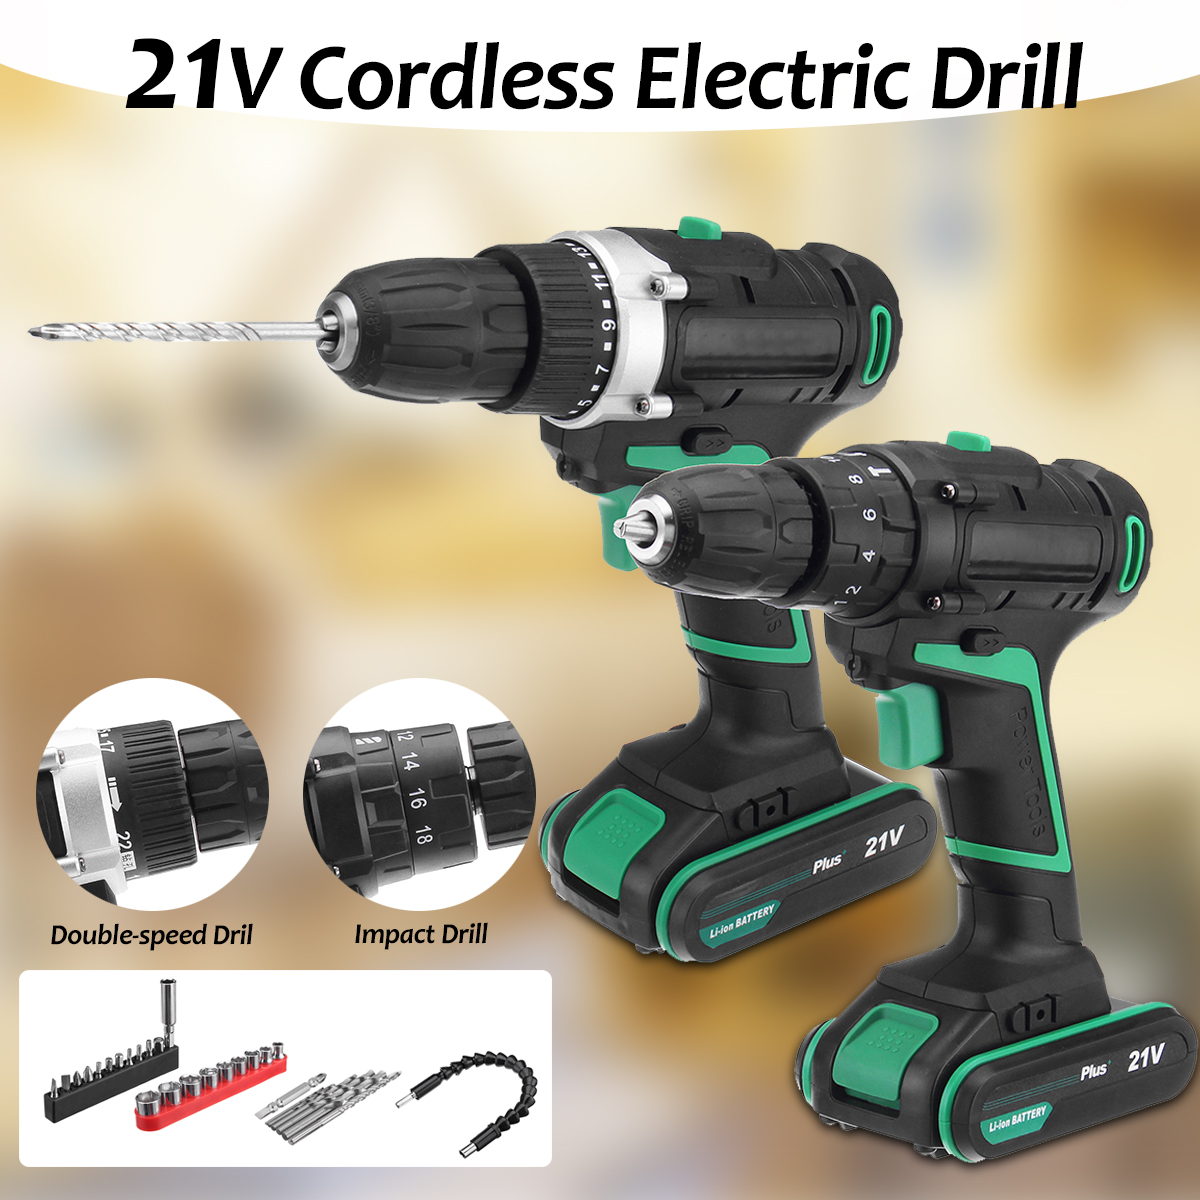 AC 100-240V 21V Plus Cordless Electric Screwdriver Rechargeable Power Drills Tools Lithium-ion Battery Electrical Hand Drill Set ac 100 240v 21v plus cordless electric screwdriver rechargeable power drills tools lithium ion battery electrical hand drill set